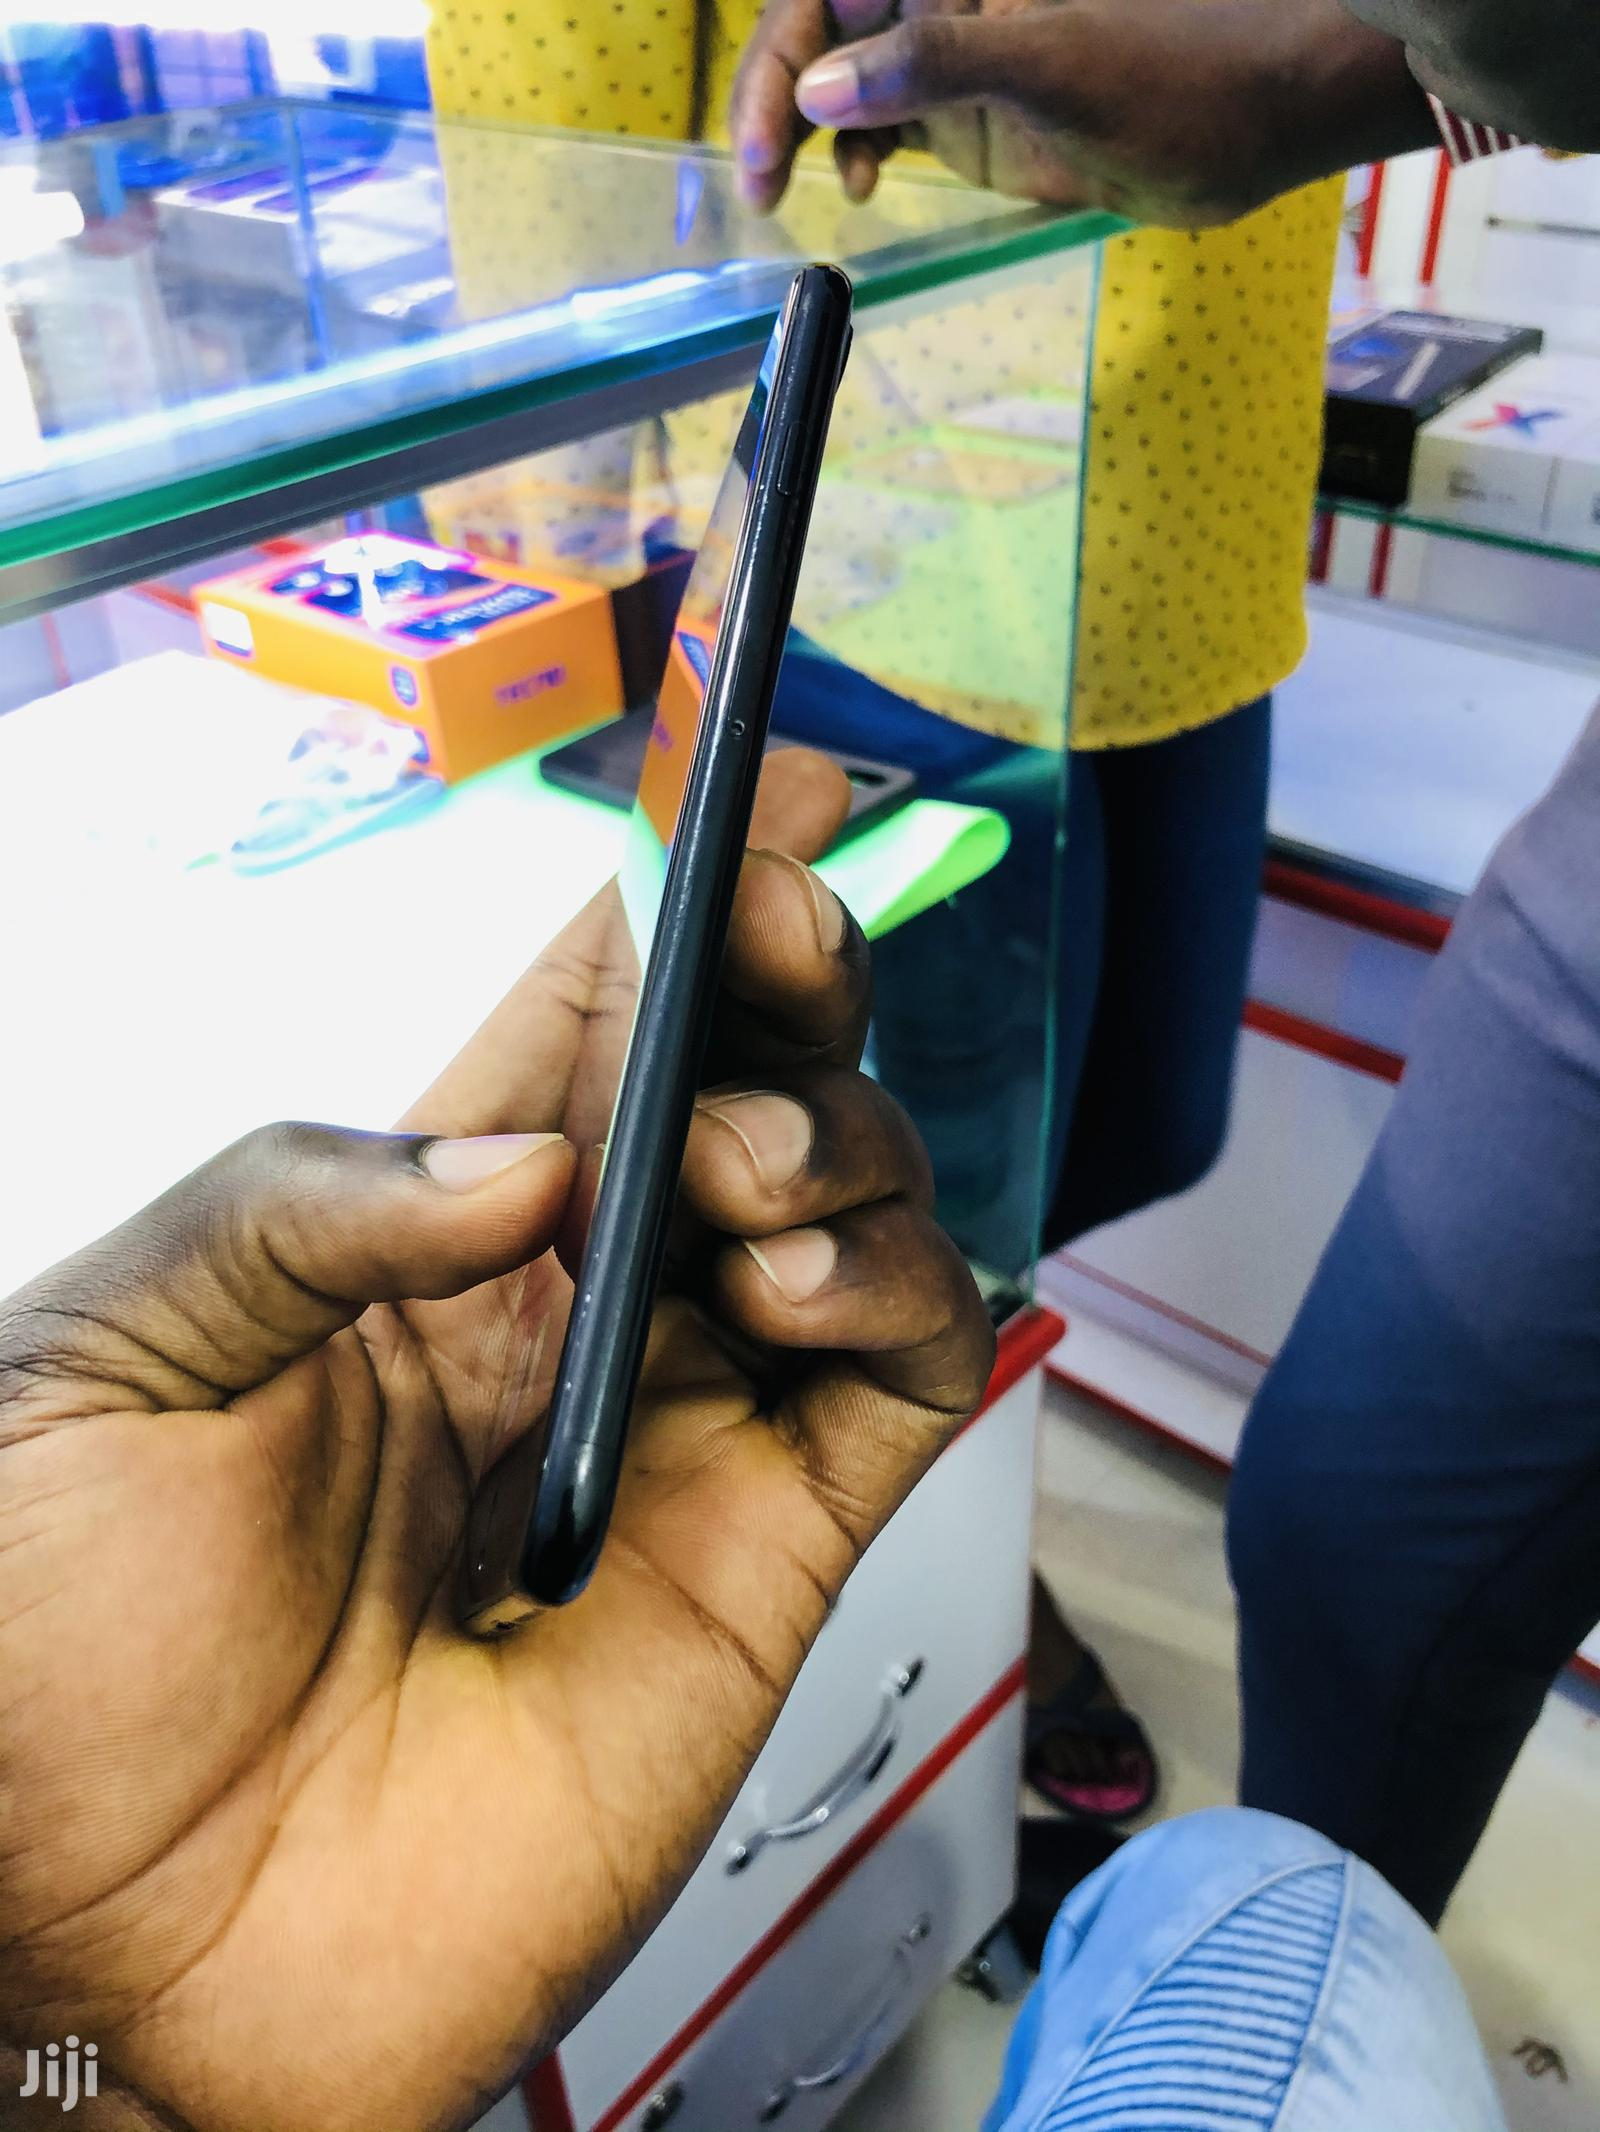 Apple iPhone 7 Plus 128 GB Black | Mobile Phones for sale in Kampala, Central Region, Uganda